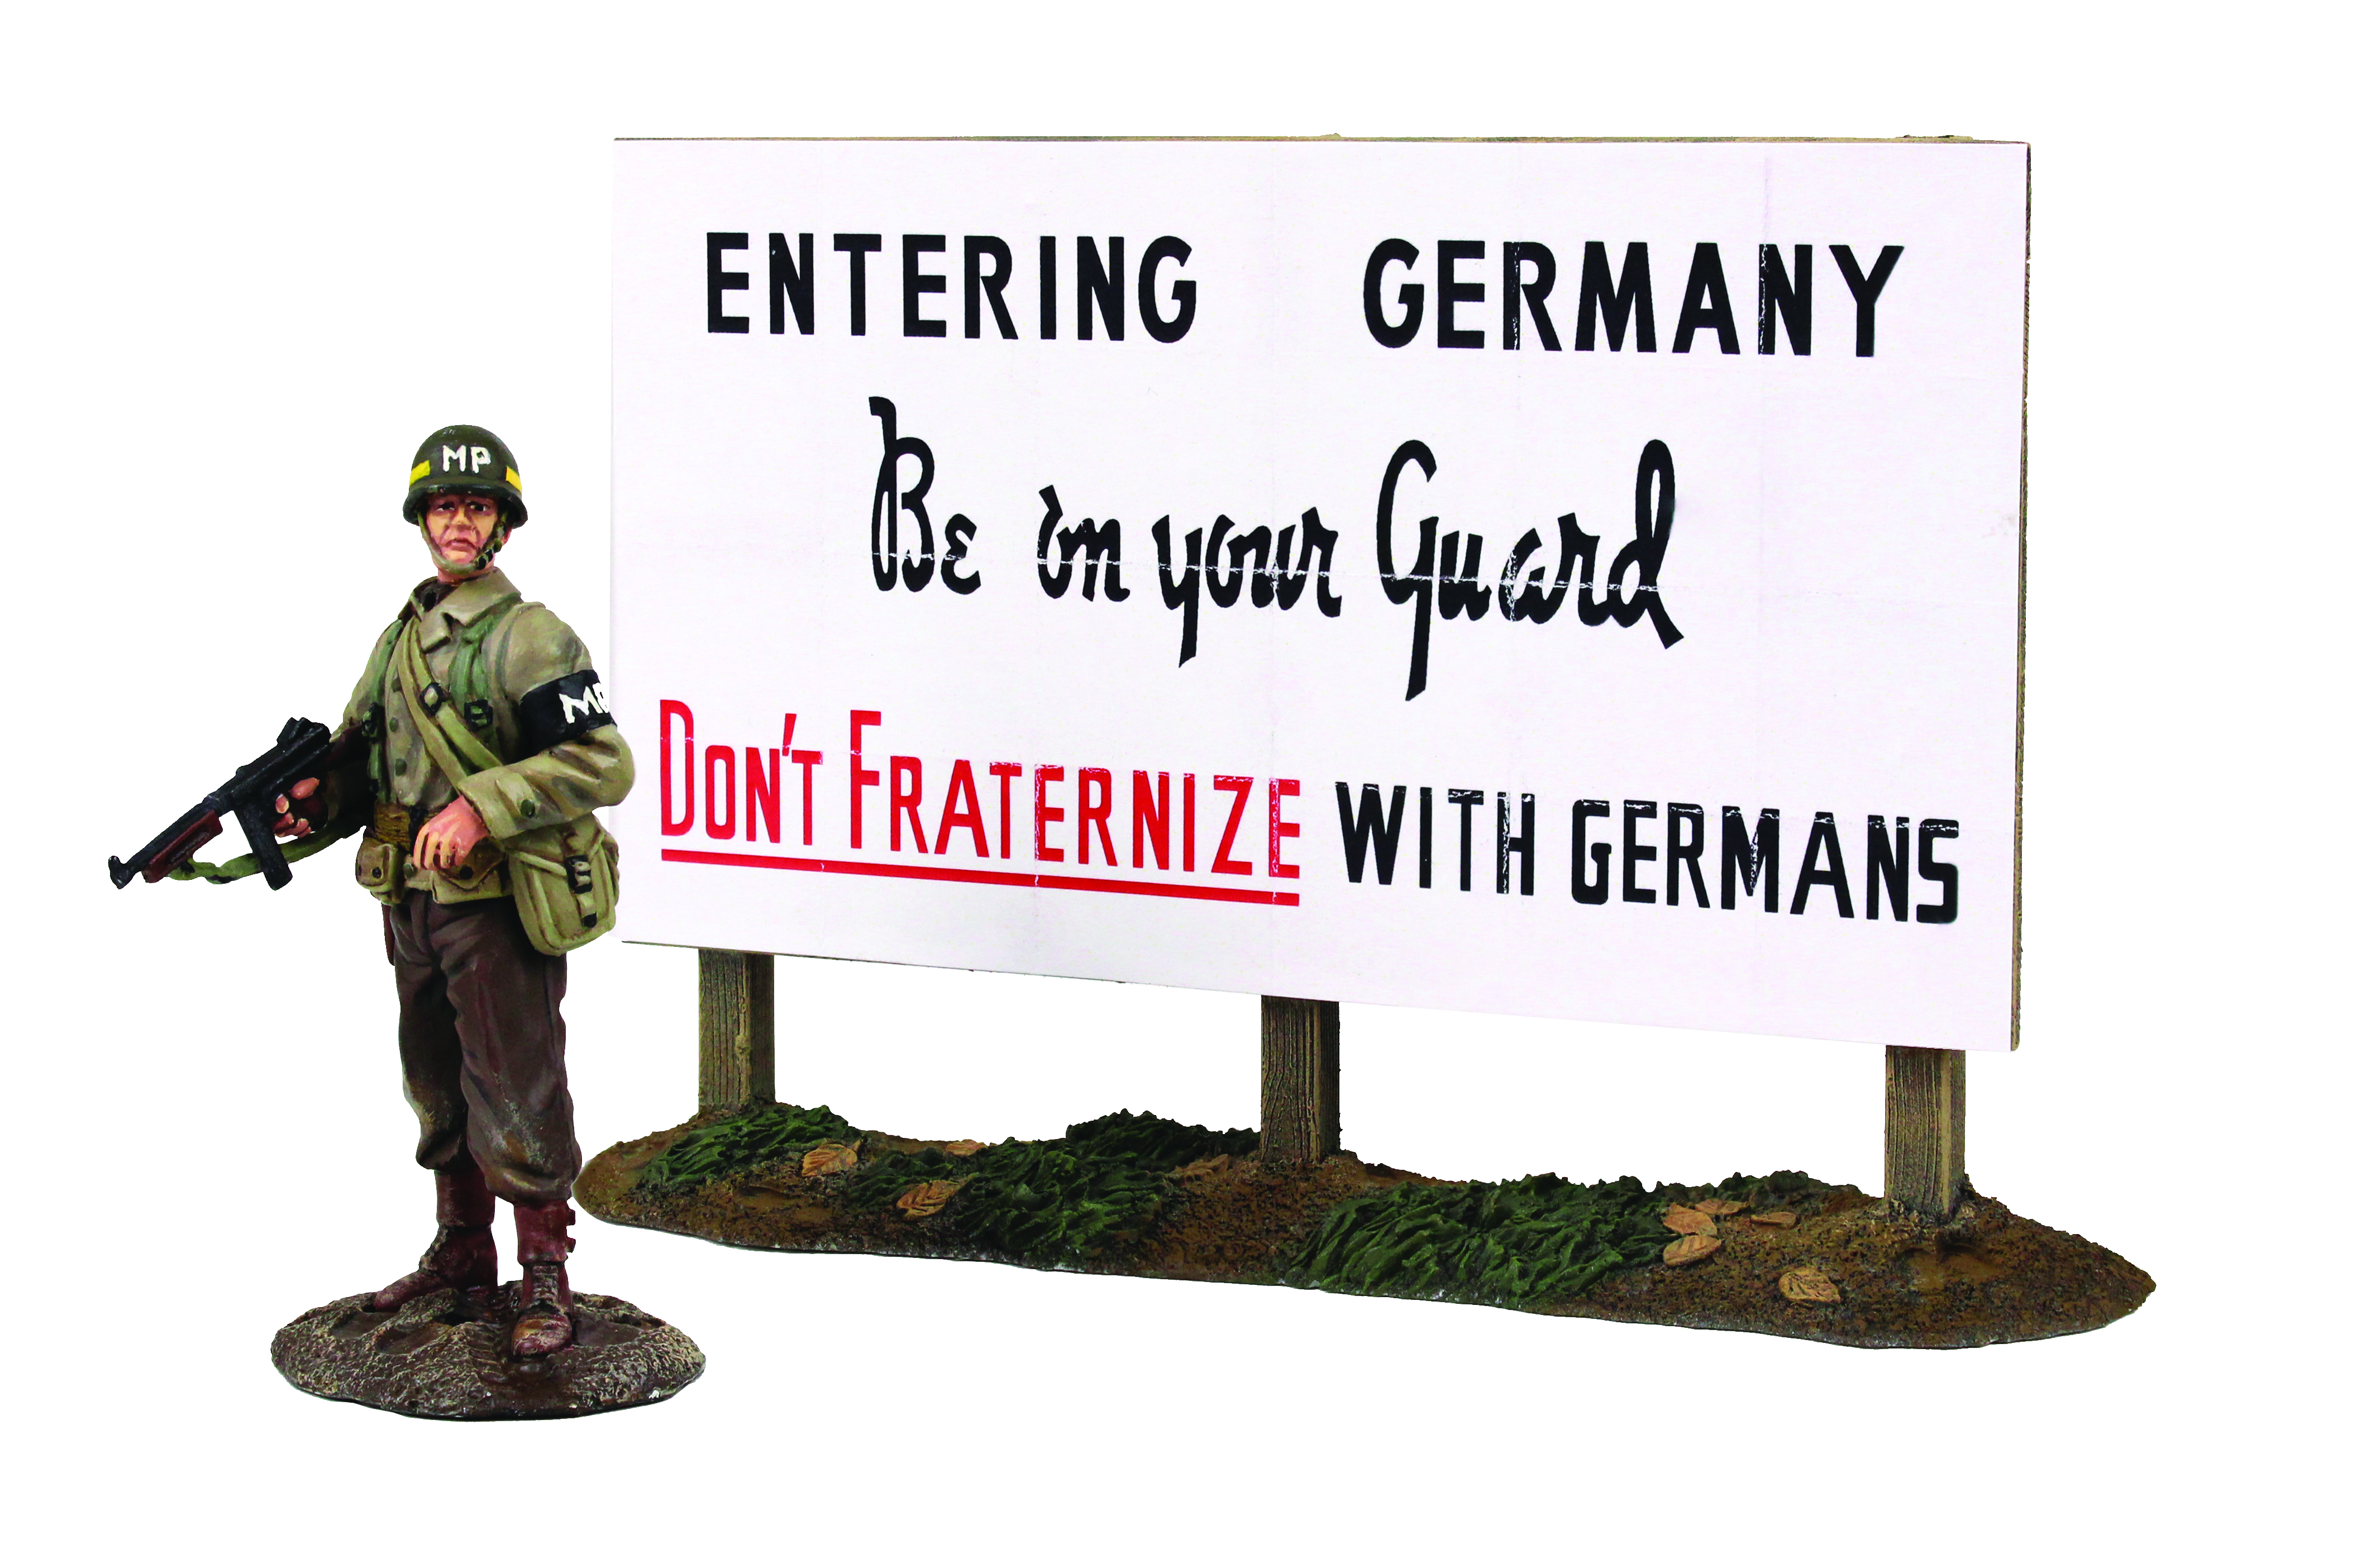 U.S. Military Policeman Standing with Thompson and Warning Sign, Winter 1944-45 - 2 piece set